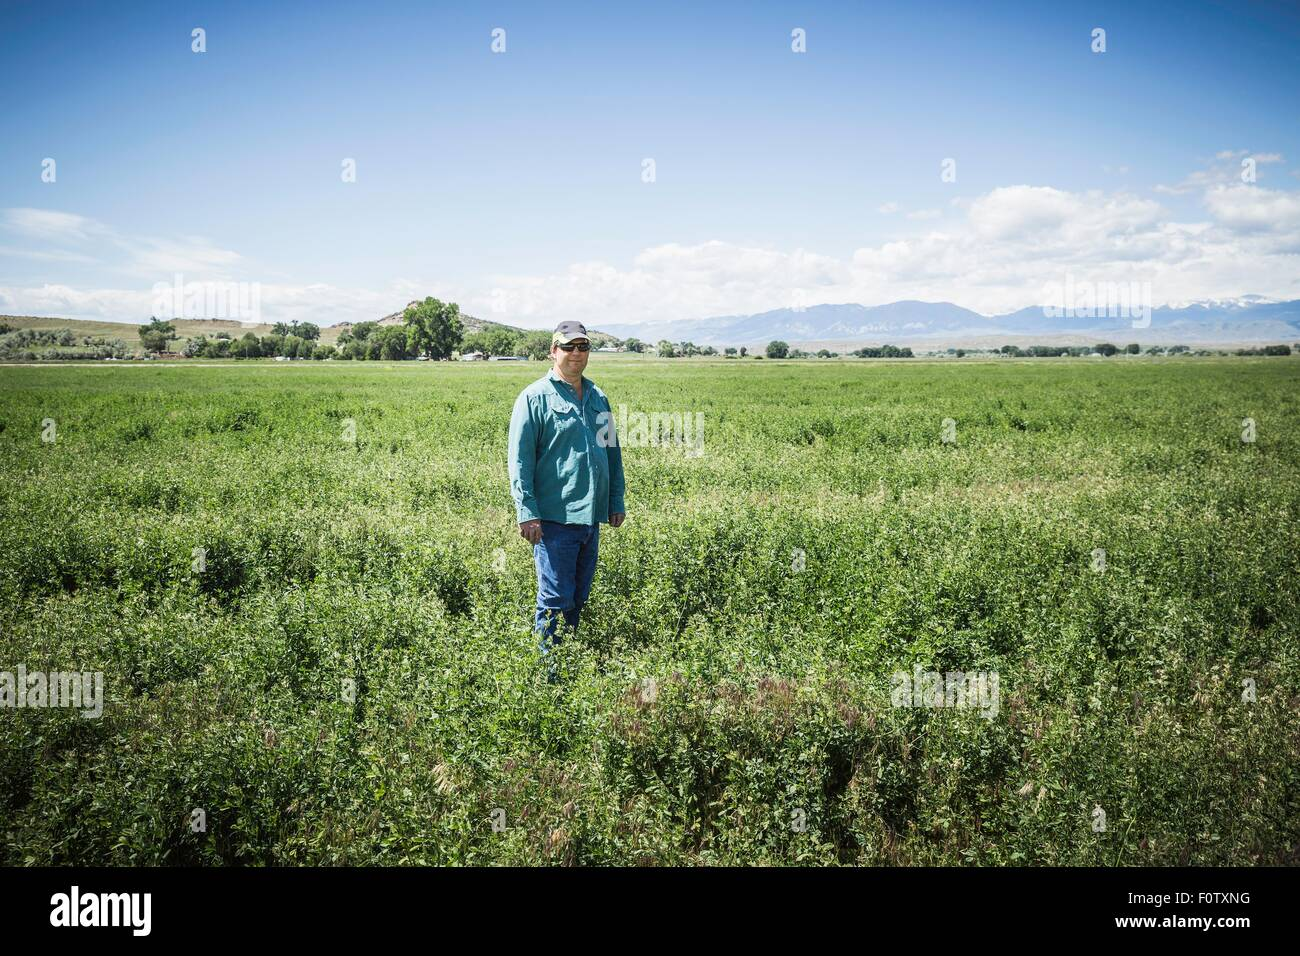 Mature man in field, Billings, Montana, USA - Stock Image